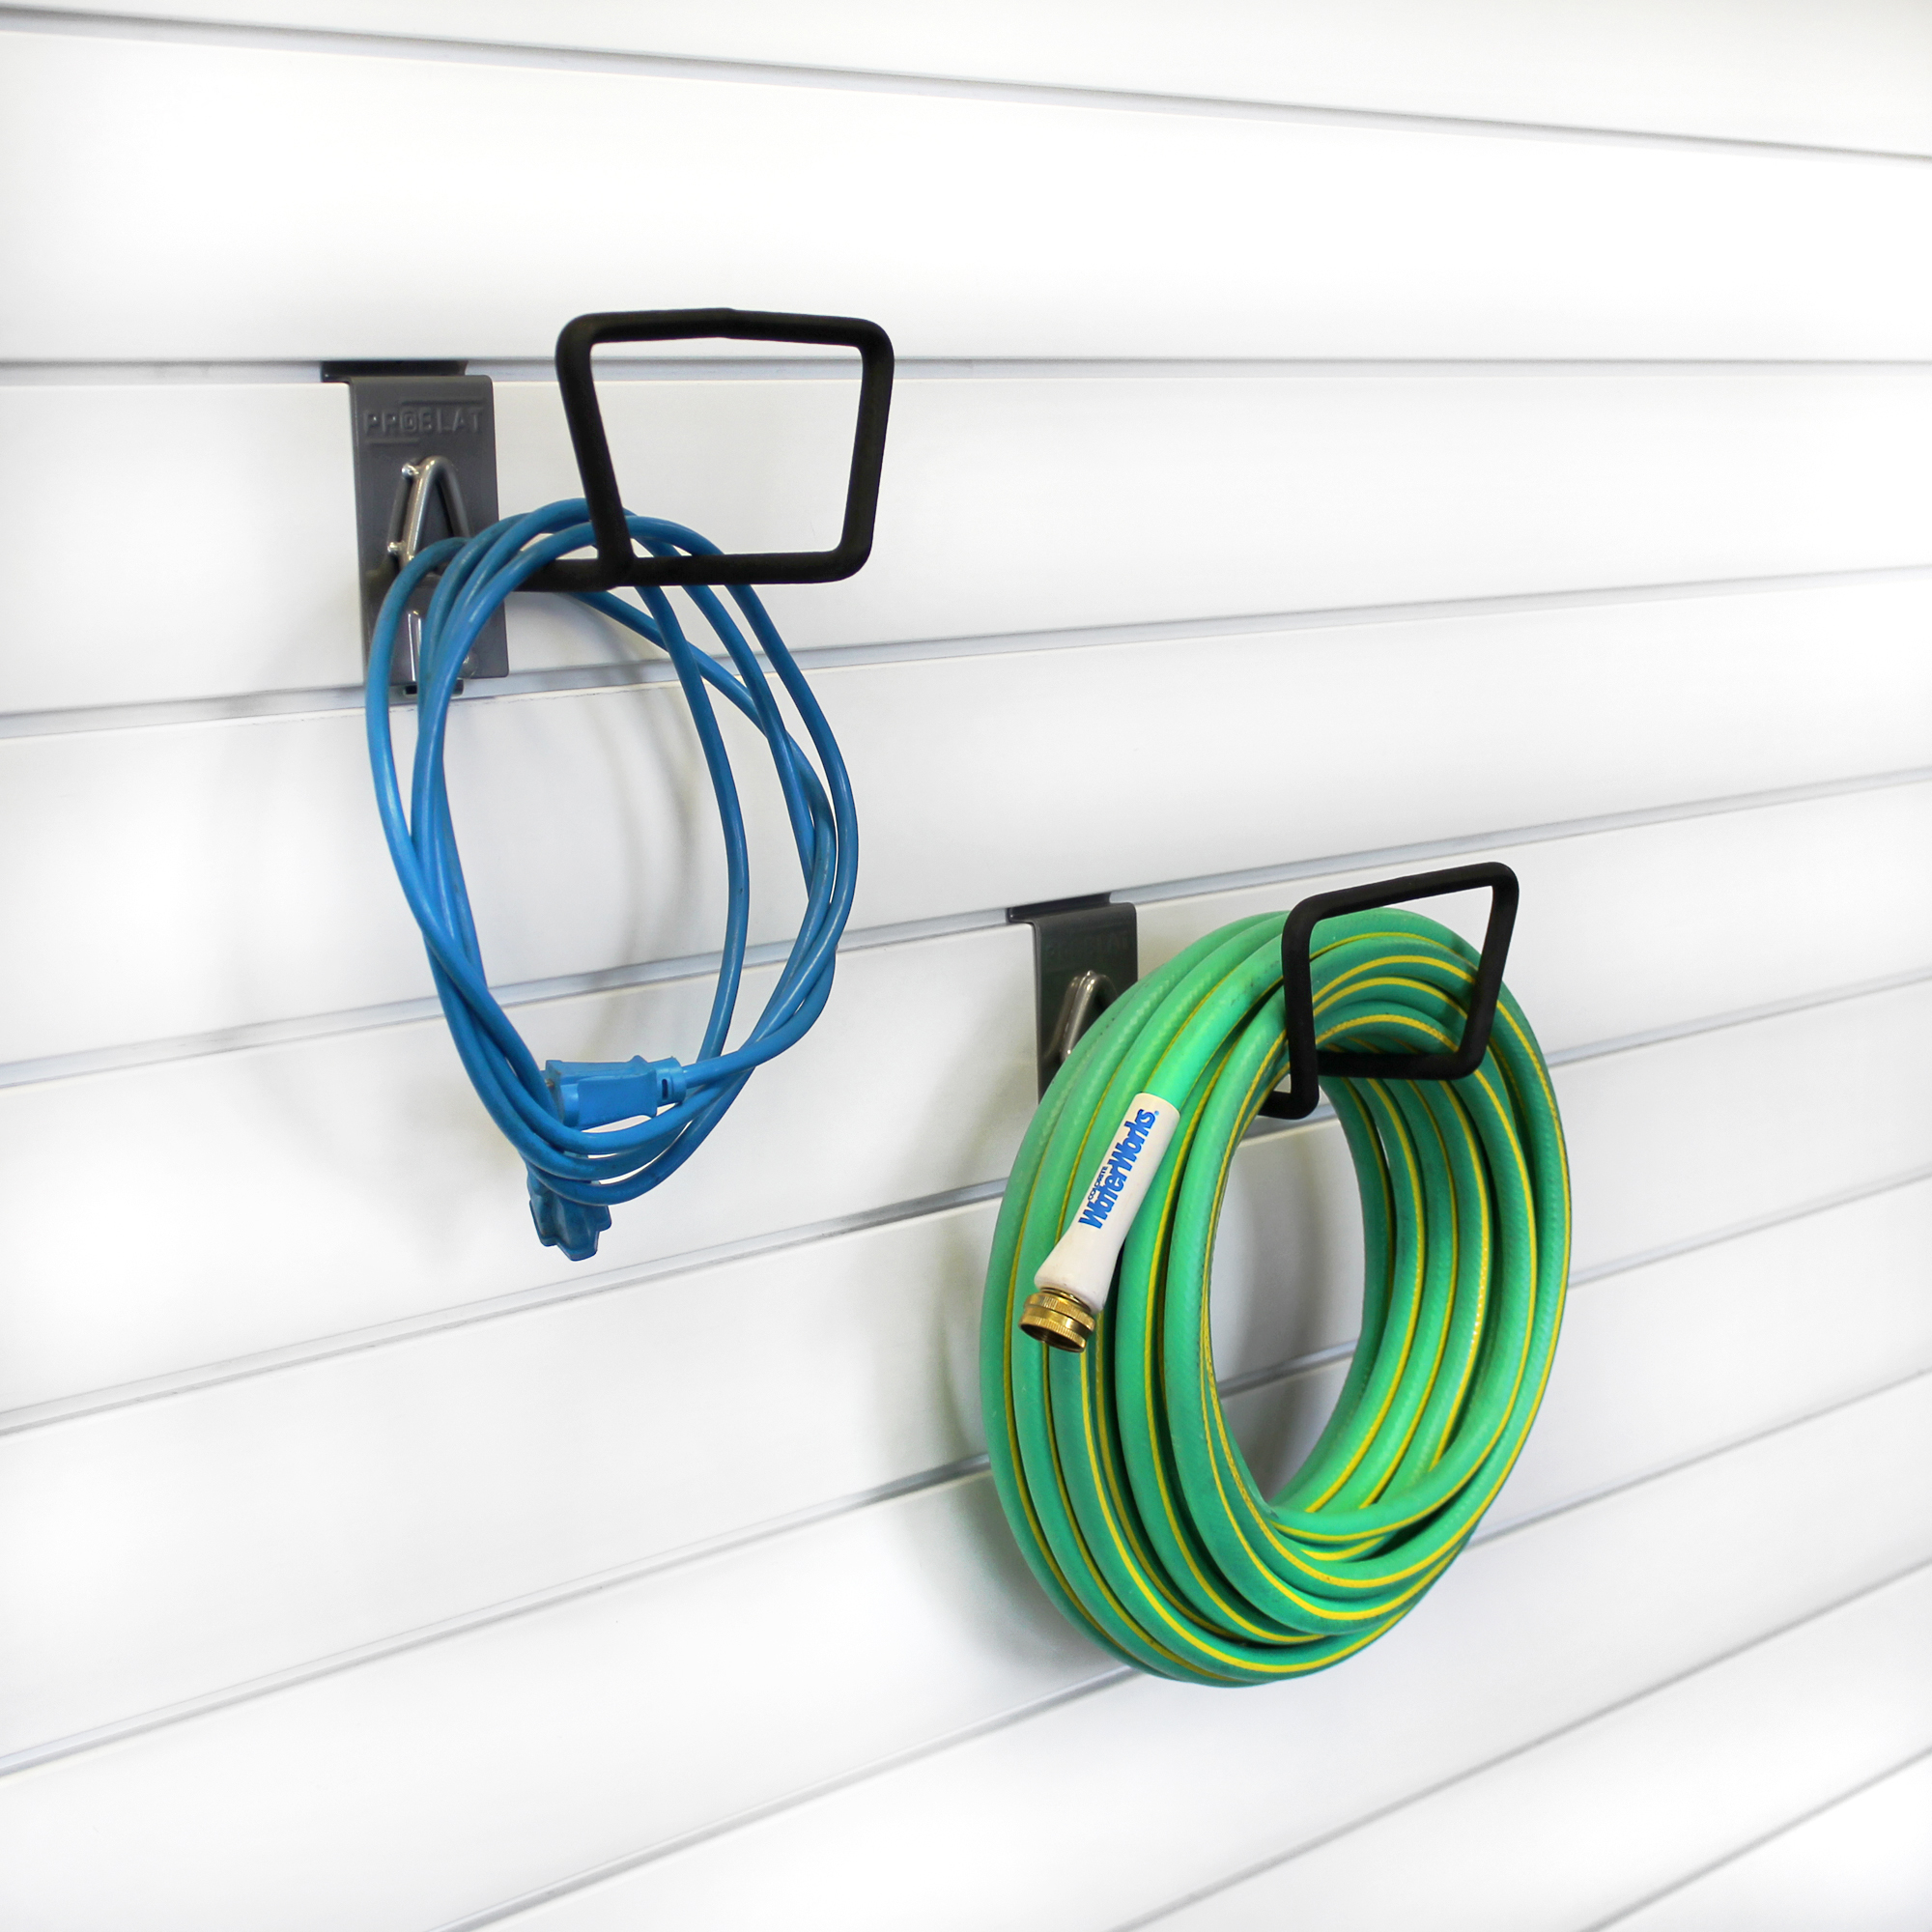 Beau ... Proslat Hose Rope And Extension Cord Holder 2 Pack The Garage  Commercial Duty Steel Garden ...